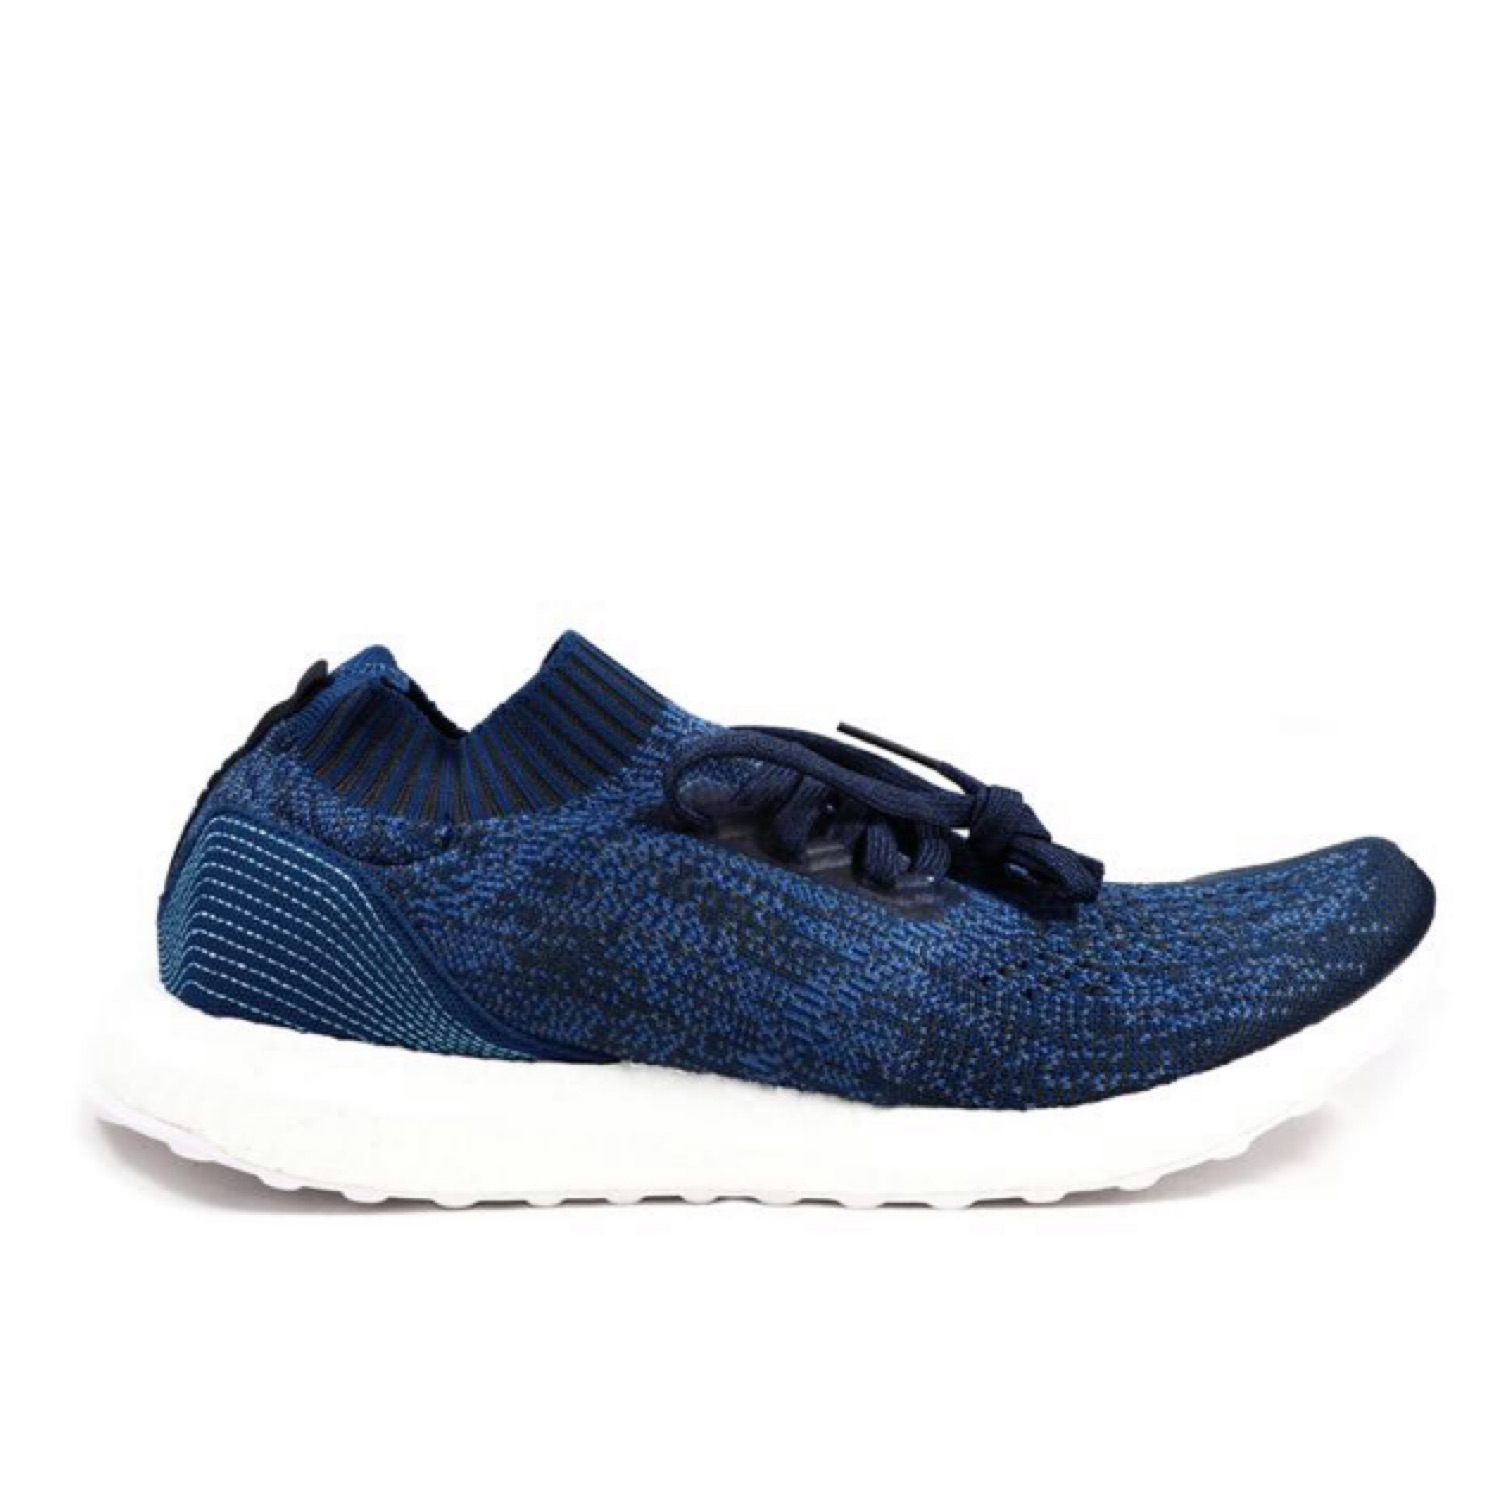 Ultraboost Parley Uncaged